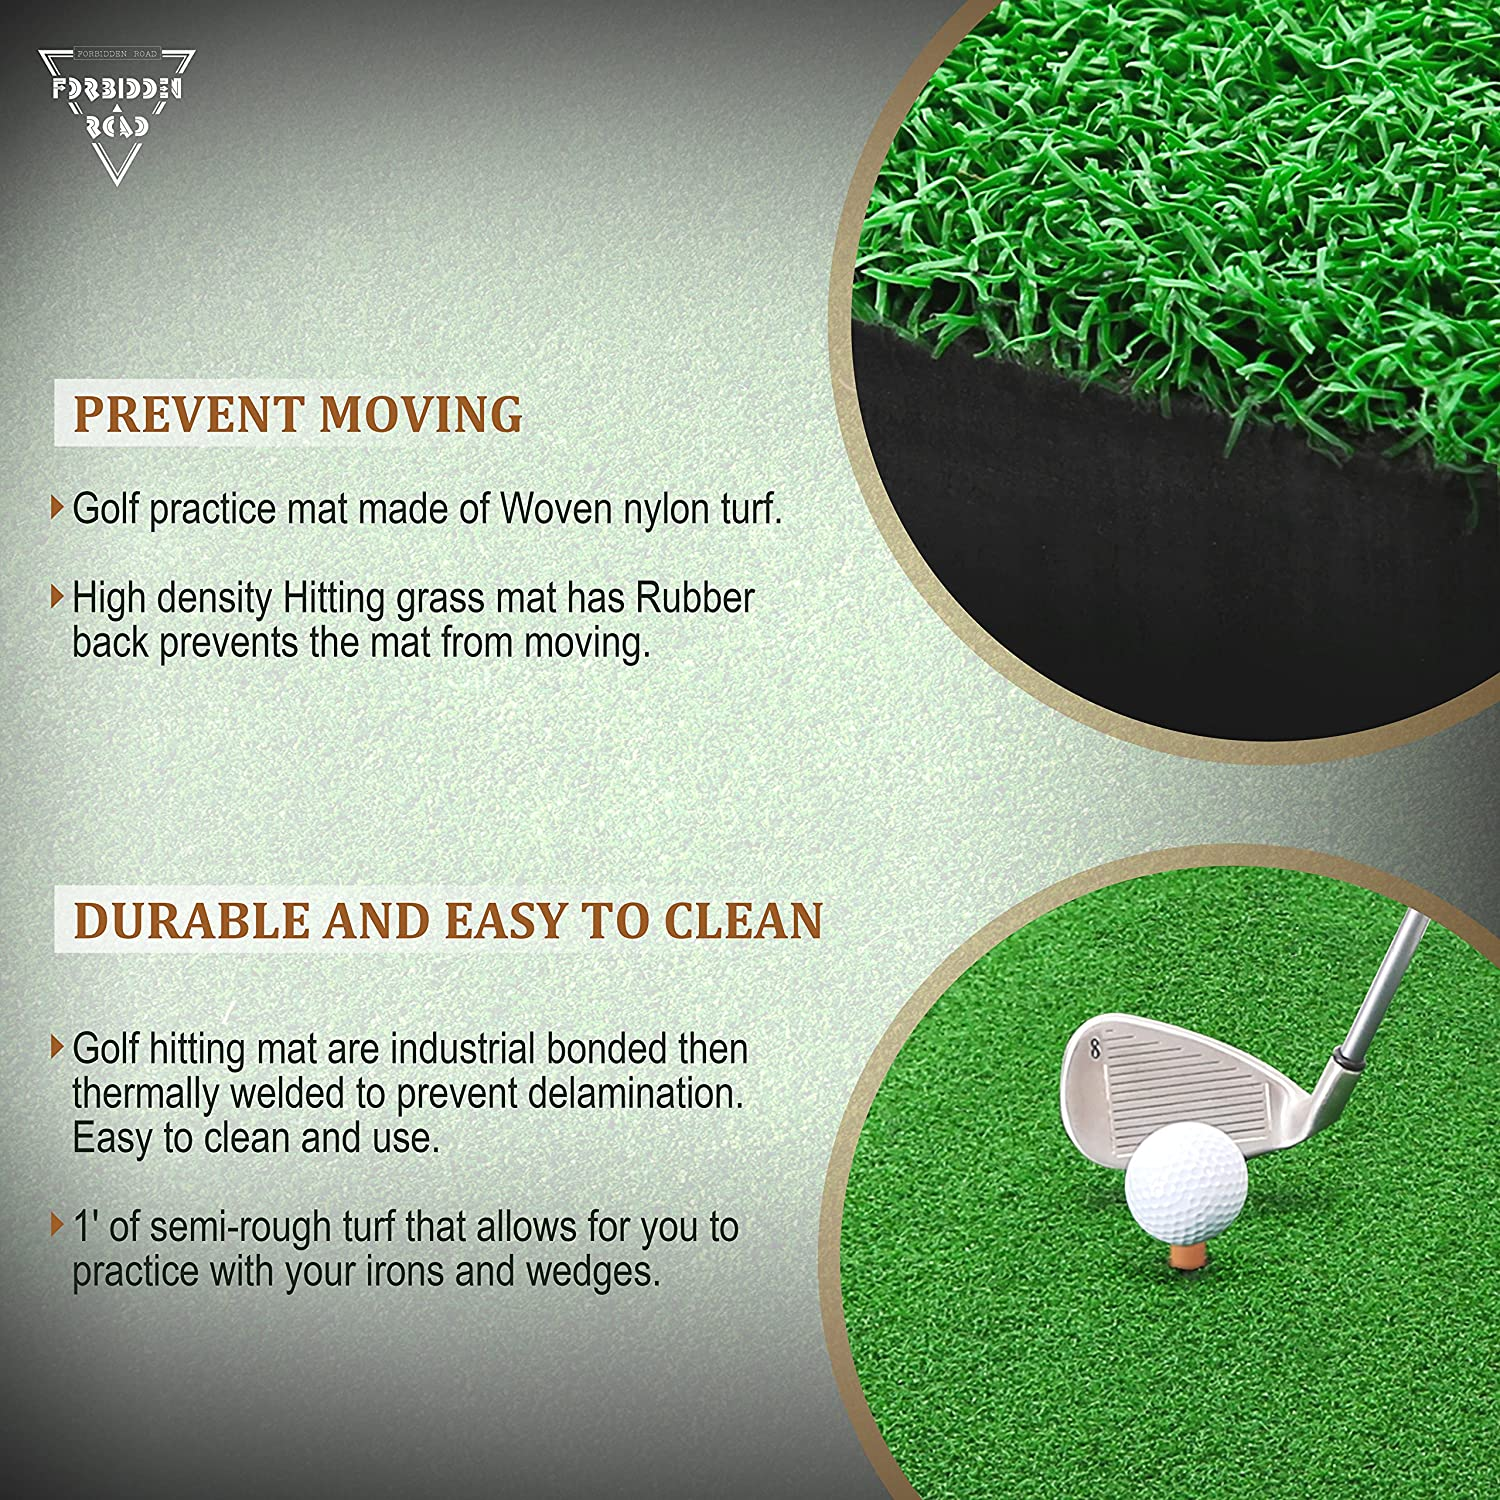 durapro work golf great youcametowin from mats pin mat and get to nets targets bundle up